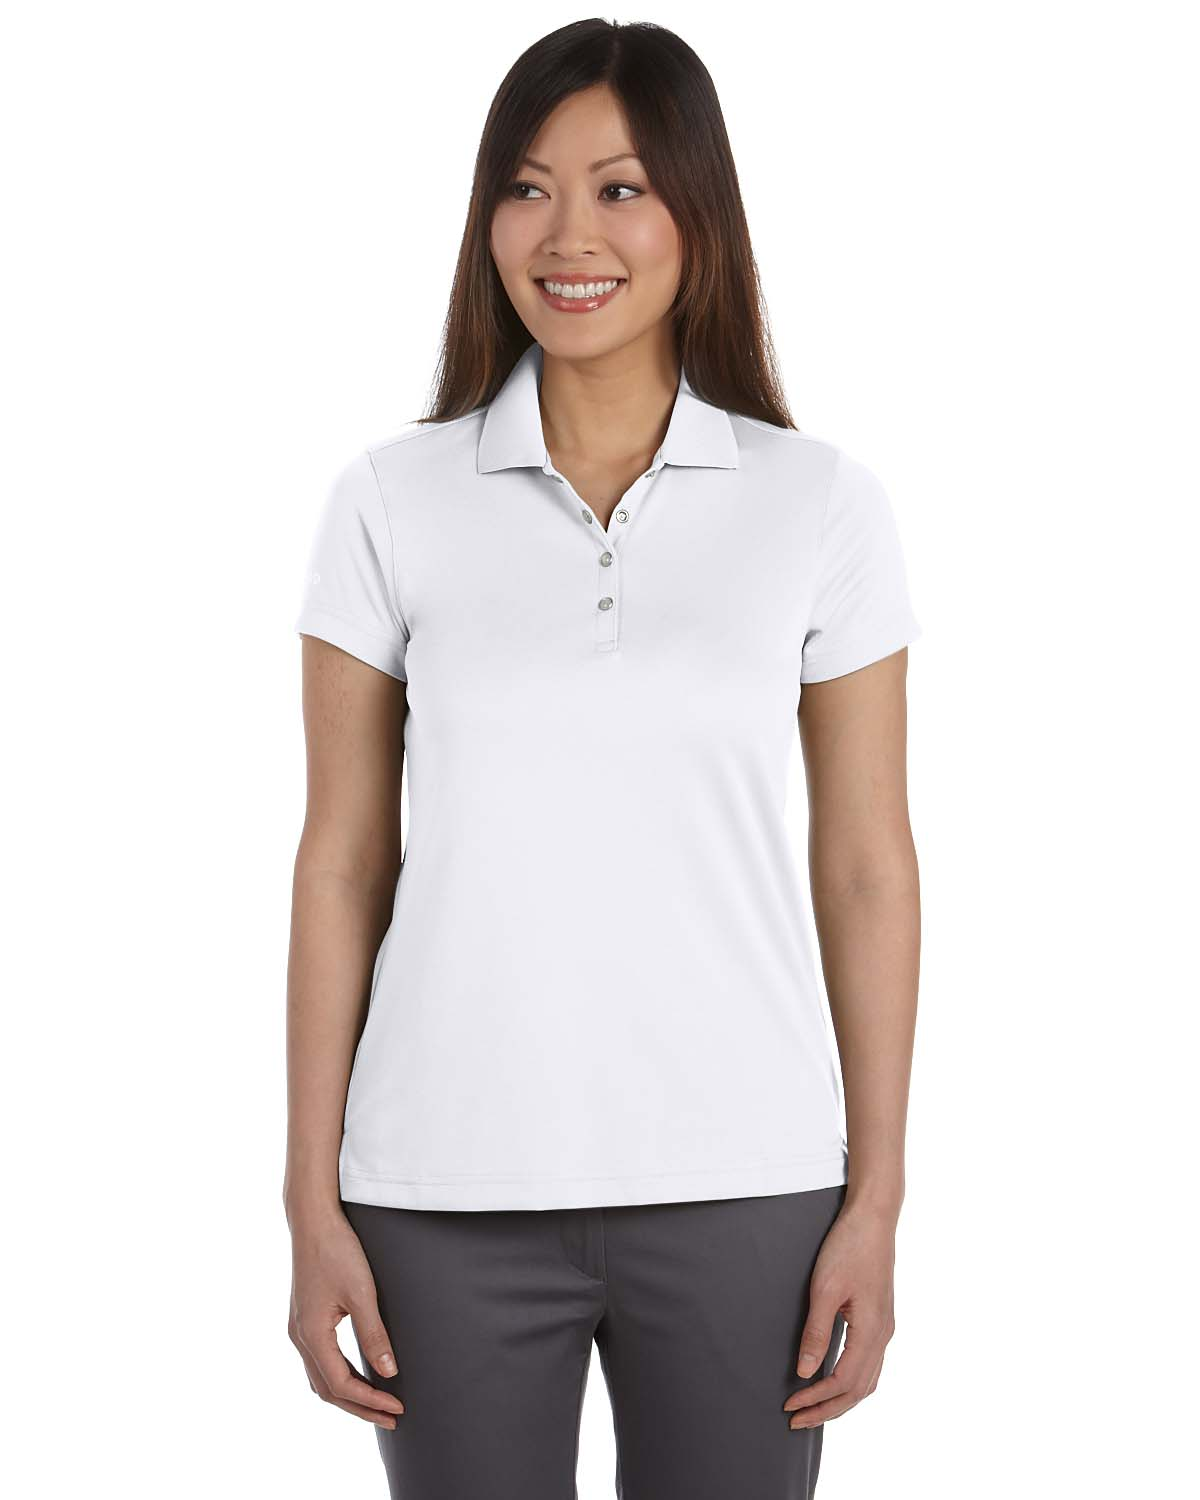 Izod 13Z0081 Golf Shirt Women's Short Sleeve Performance Pique by Izod